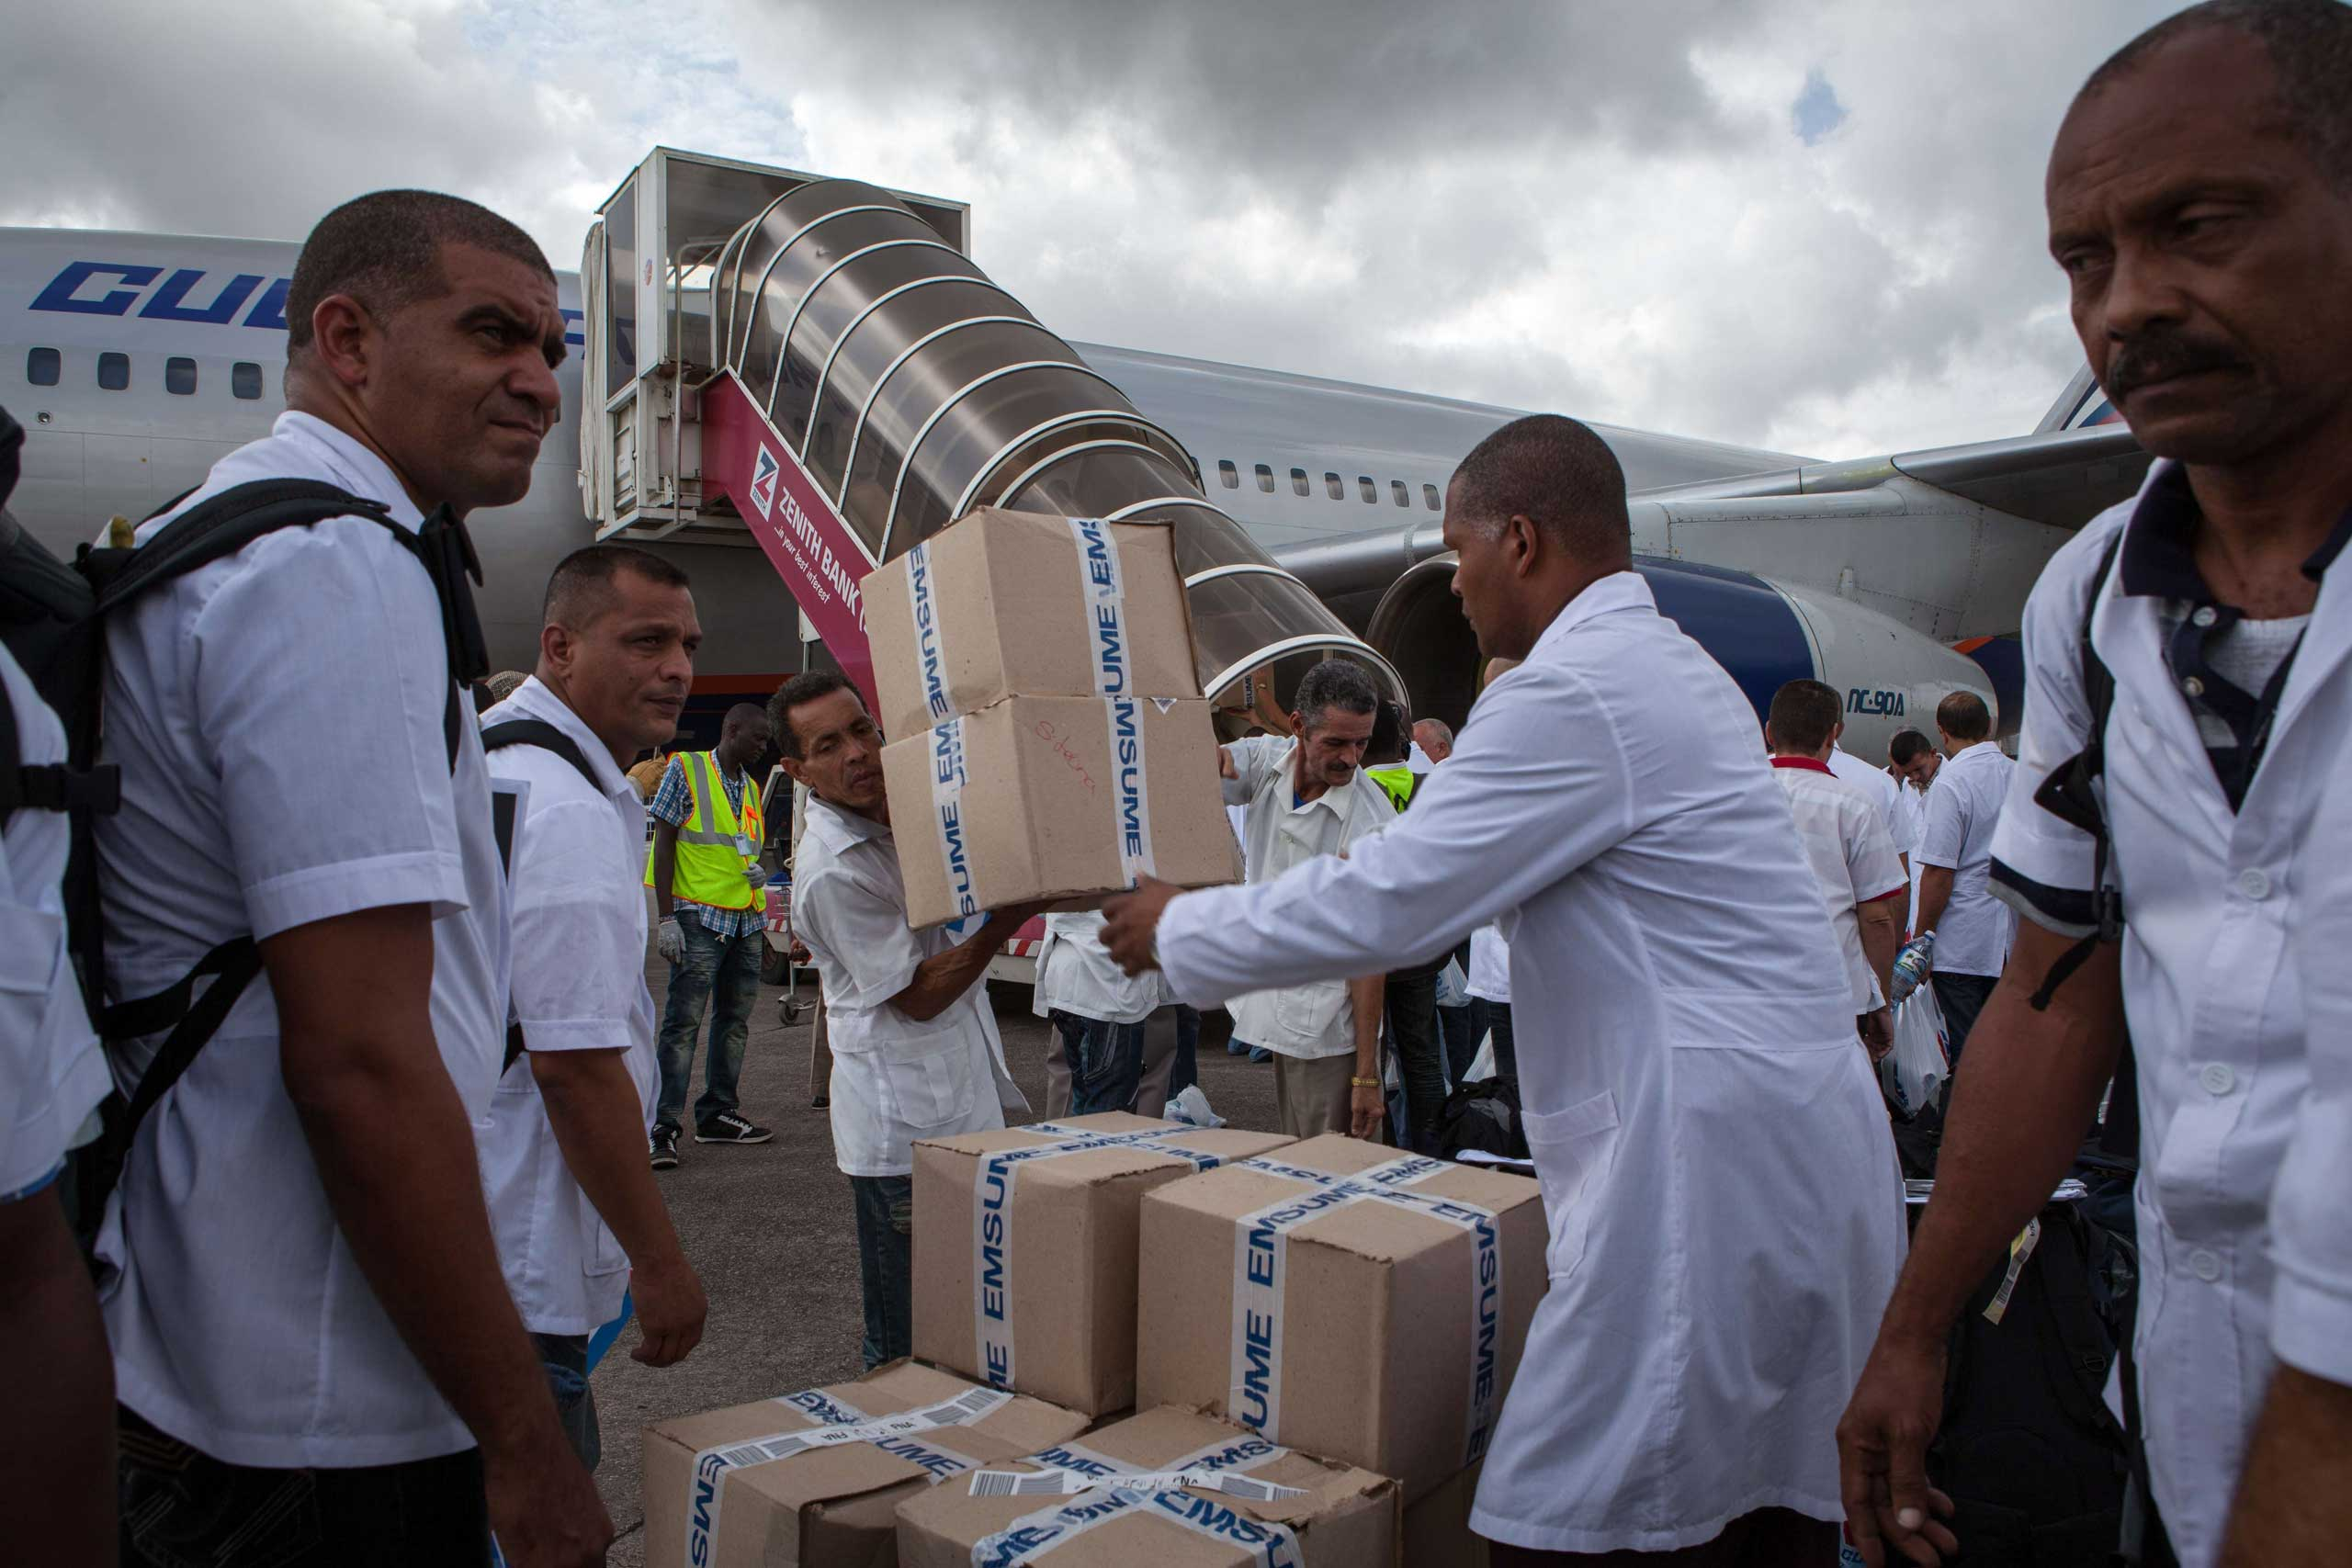 Cuban doctors and health workers unload boxes of medicines and medical material from a plane upon their arrival at Freetown's airport to help the fight against Ebola in Sierra Leone, on Oct. 2, 2014.